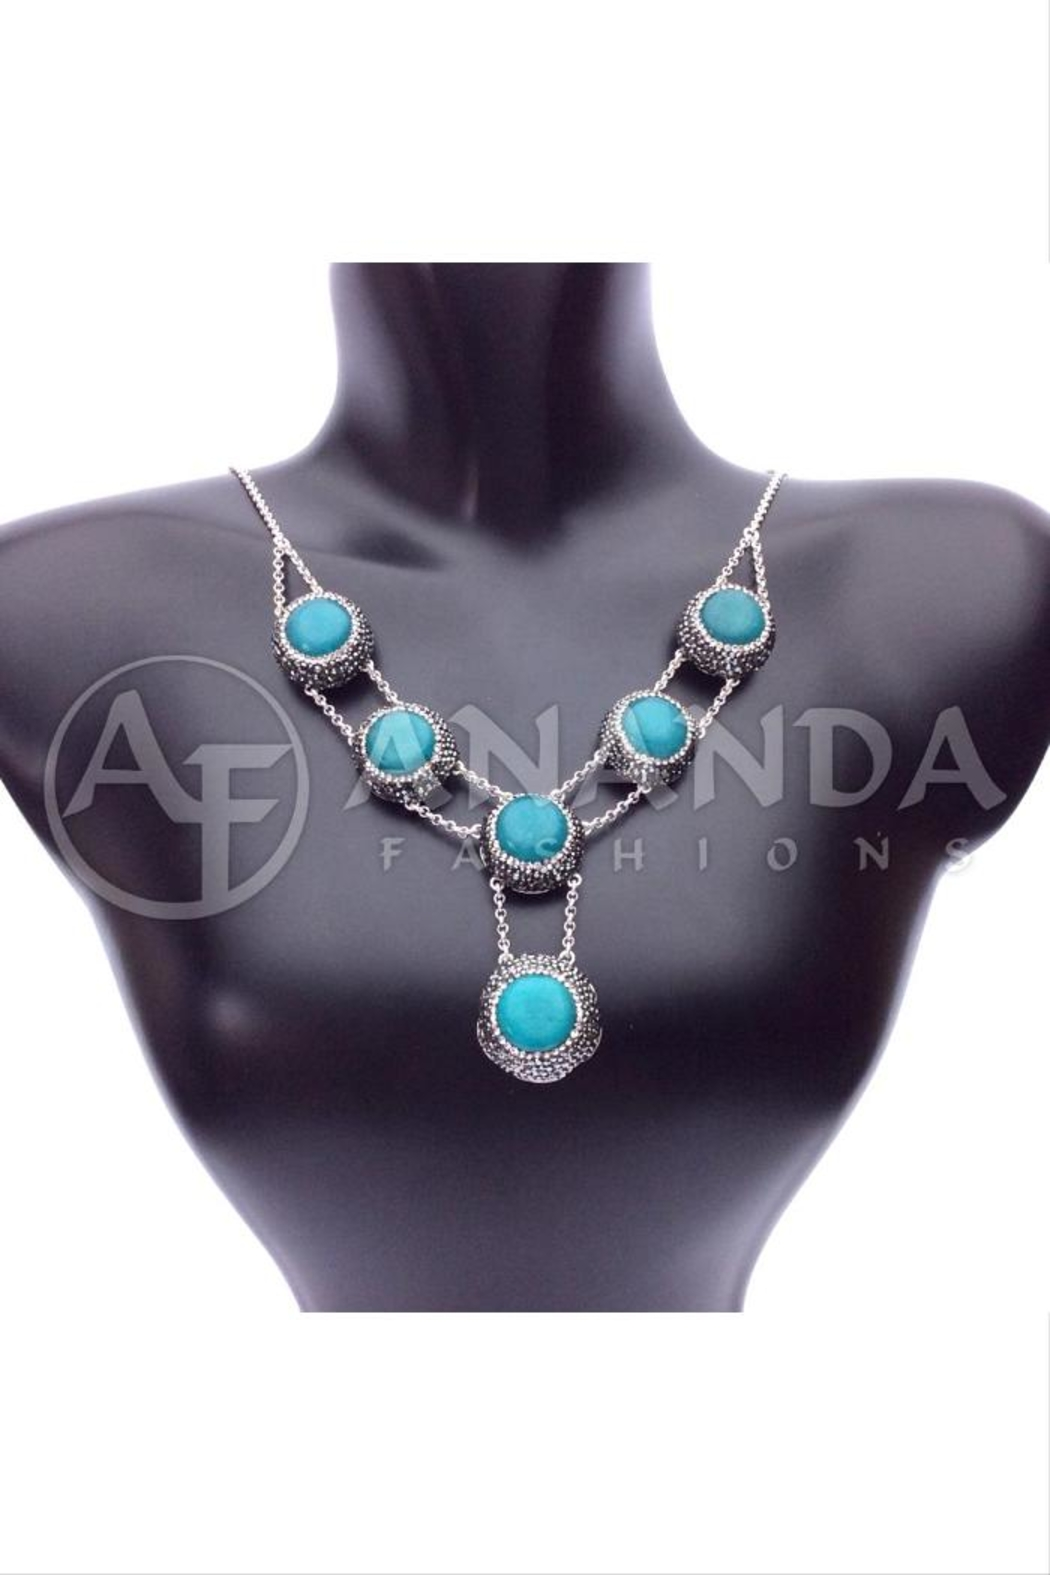 Ananda 925 Silver Necklace - Main Image